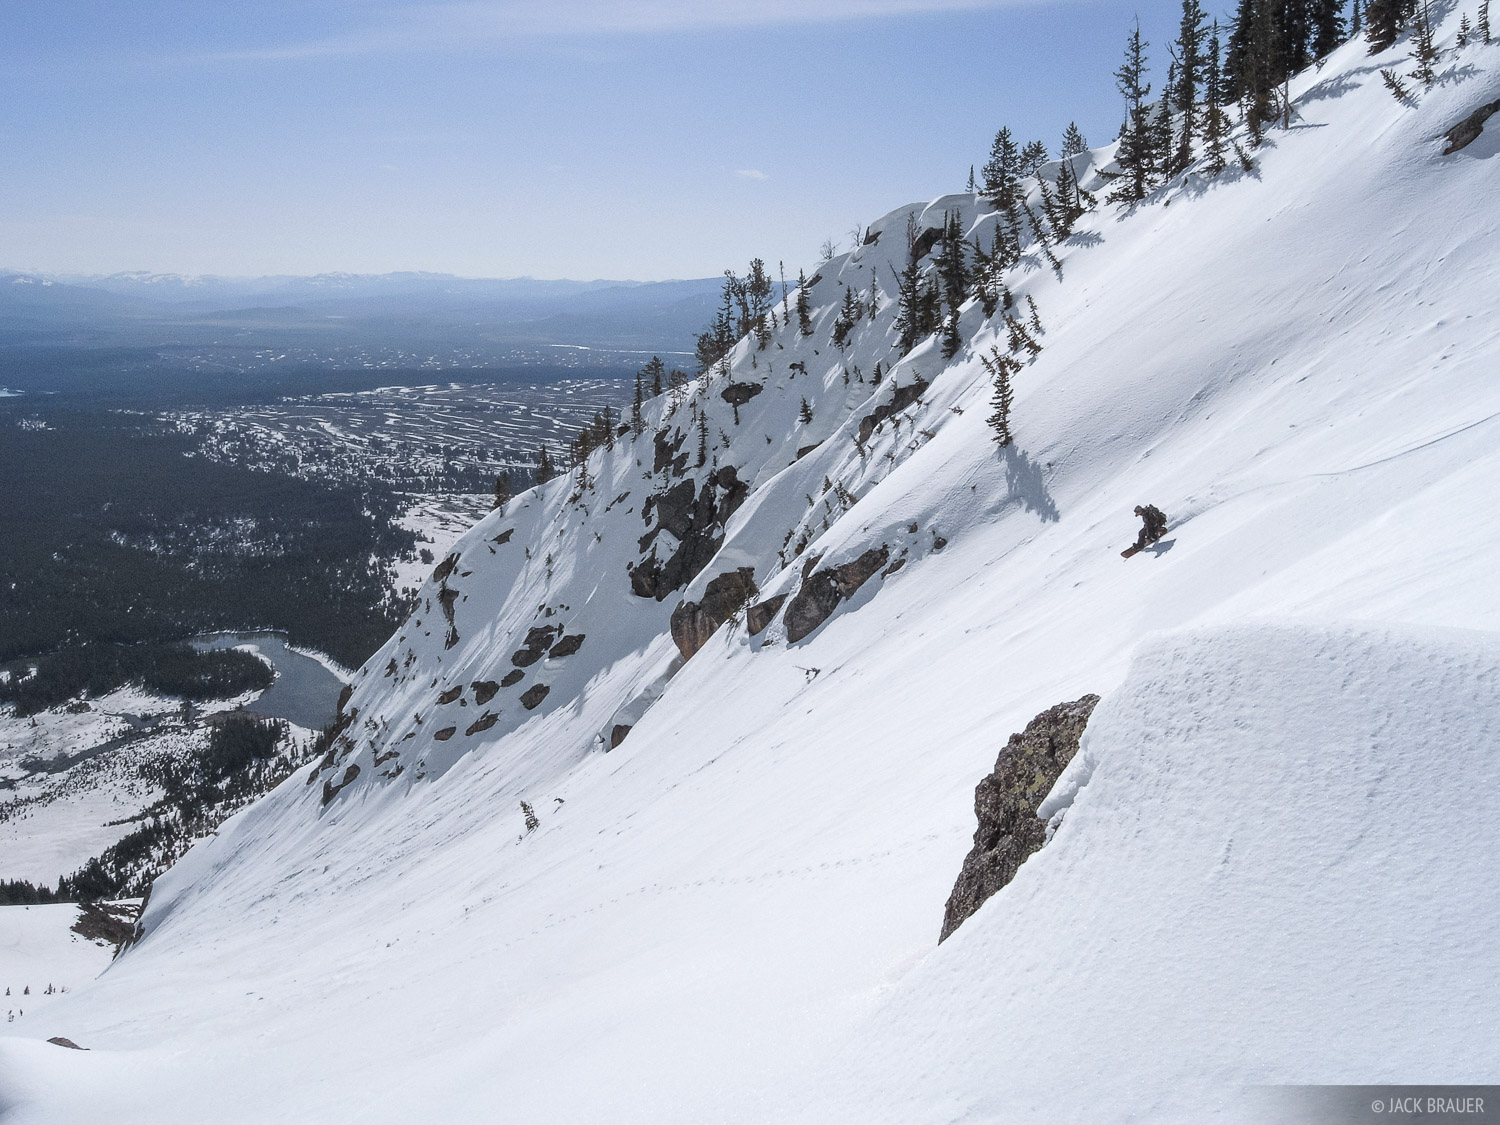 Snowboarding the middle slopes of the east face of Rockchuck Peak. Rider: Jason King.